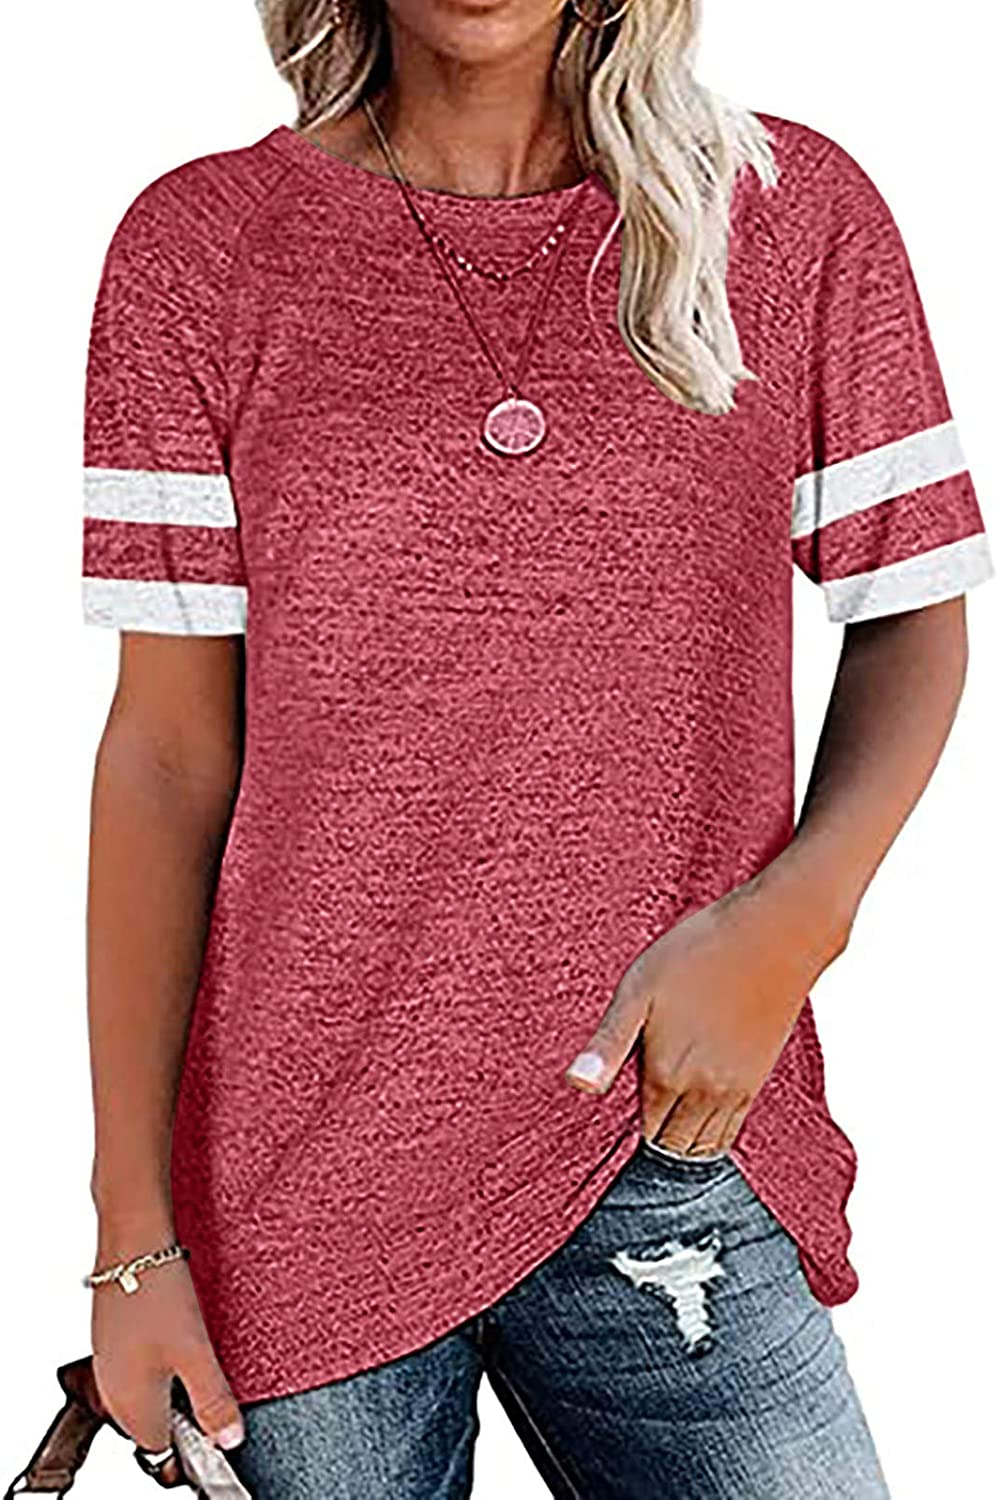 Aukbays Women's Short Sleeve T Shirts Casual Summer Tunic Tops Loose Fit Crew Neck Striped Blouses Tees Shirt